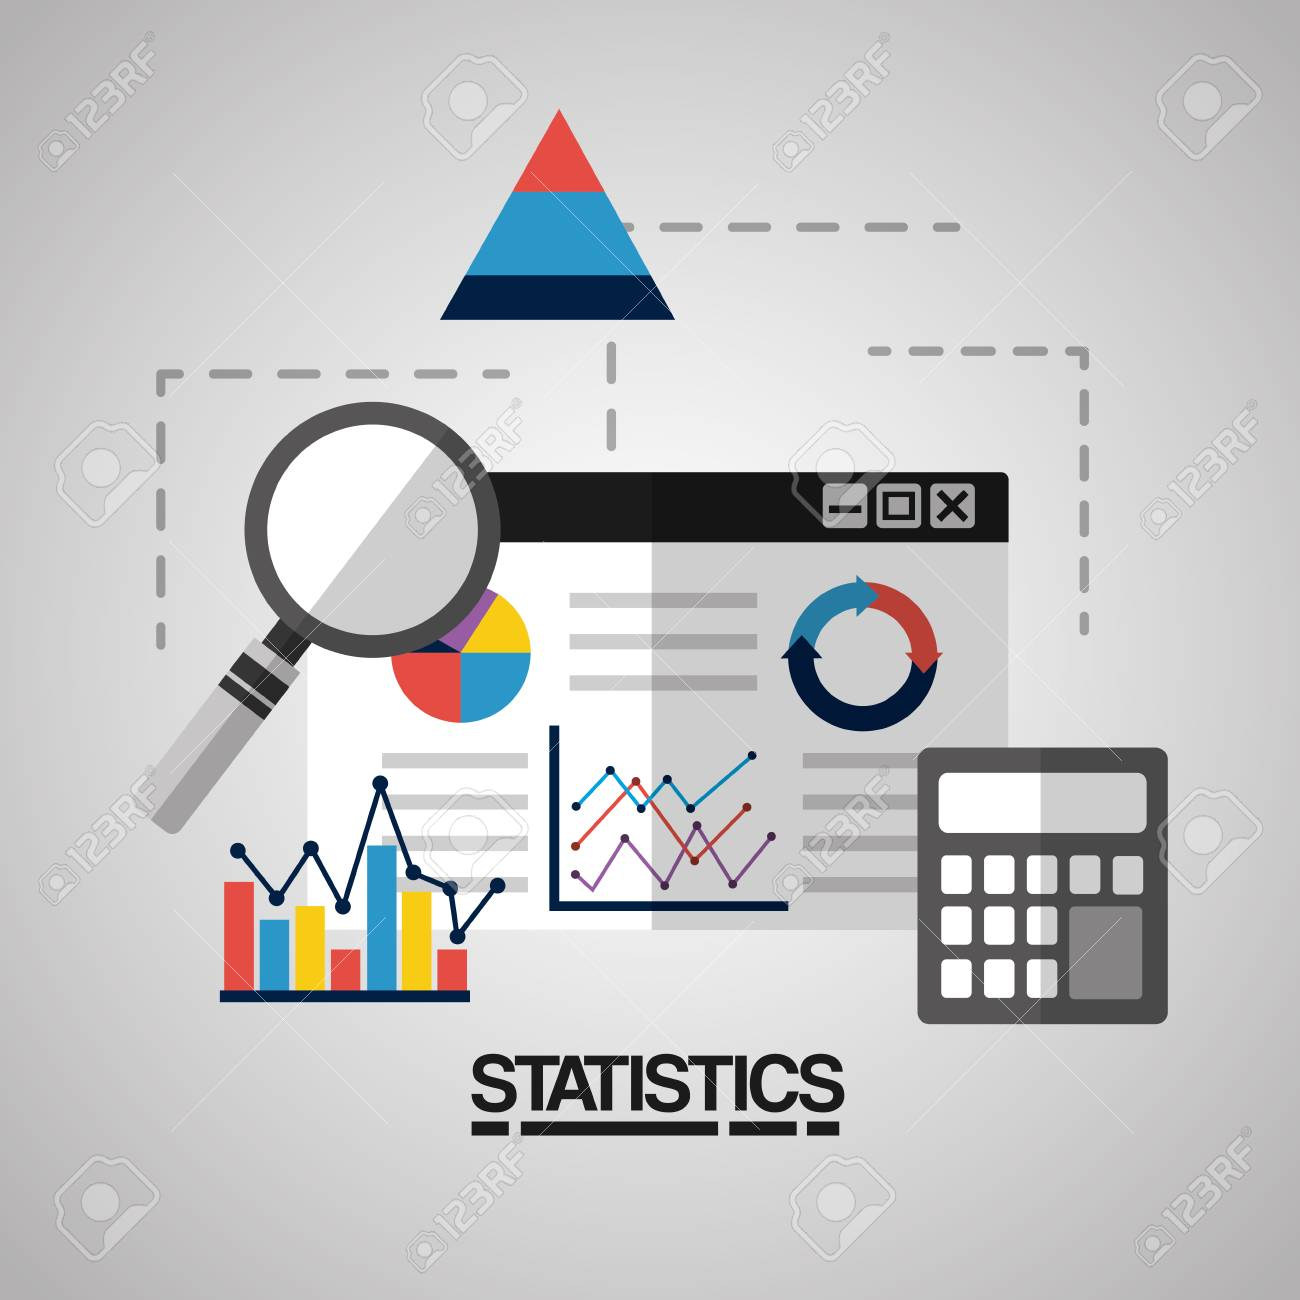 digital business web page calculator and search statistics vector